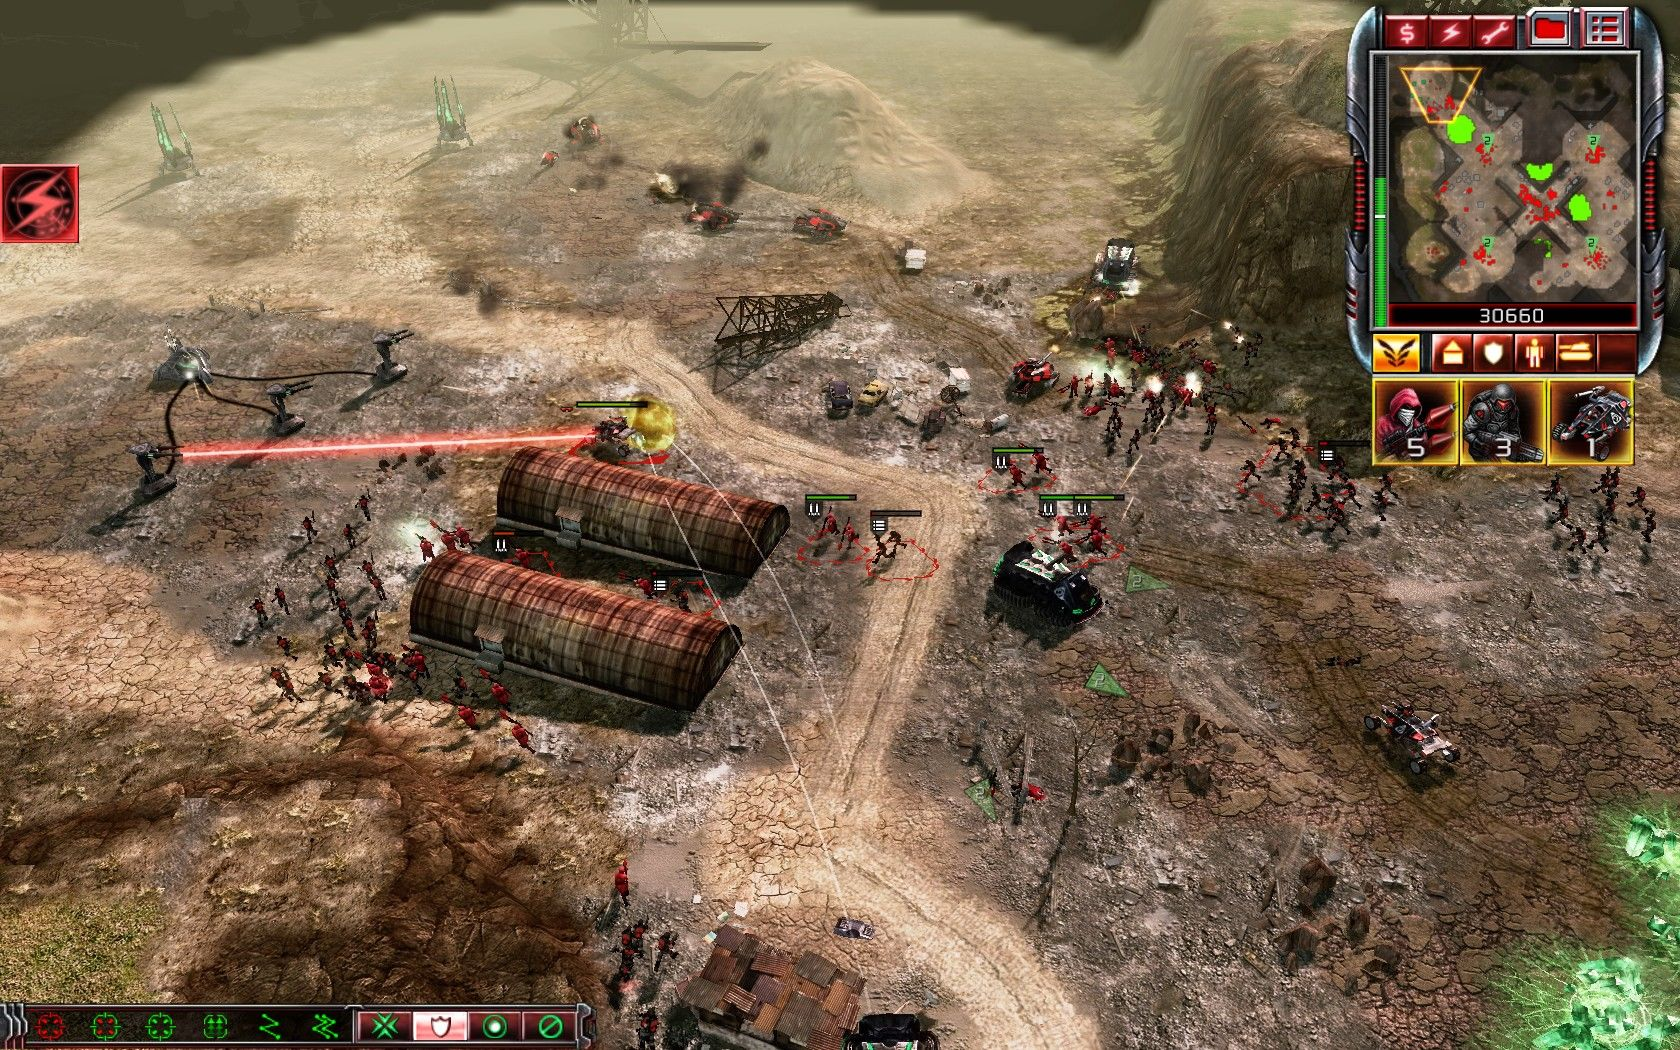 Command & Conquer 3: Kane's Wrath Windows Fighting a rebellious Nod insurrection.